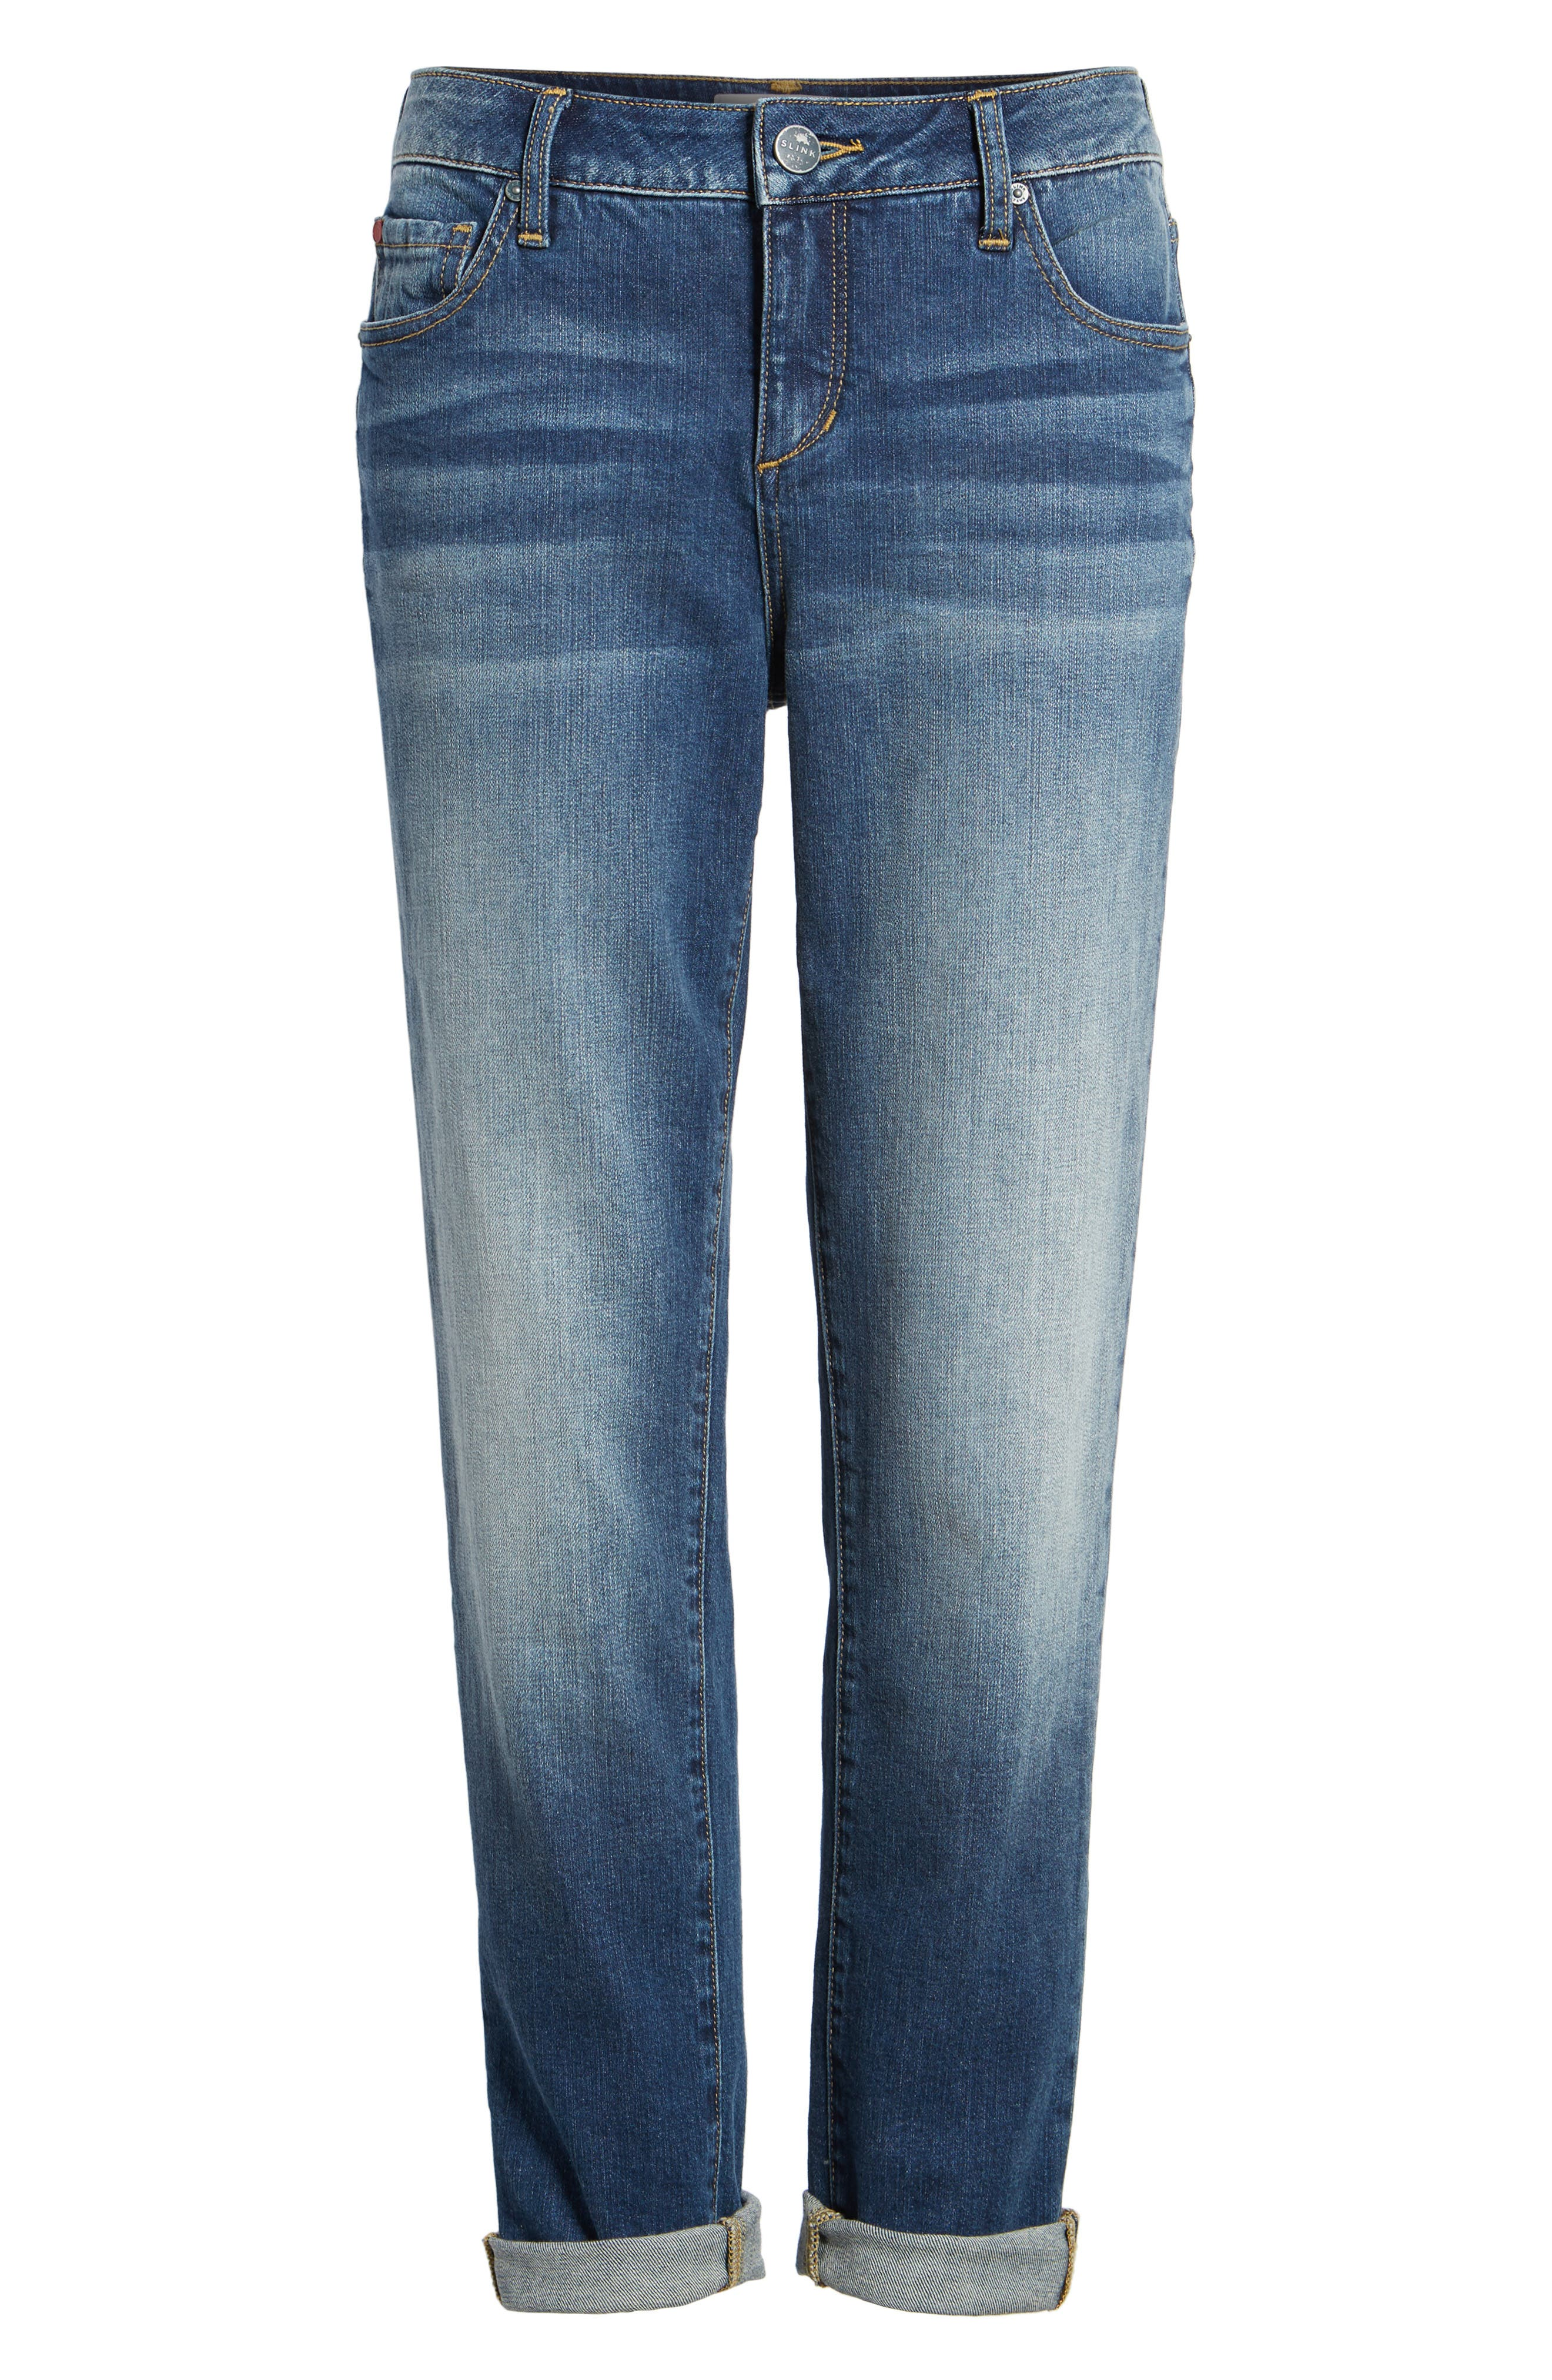 SLINK JEANS,                             Rolled Boyfriend Jeans,                             Alternate thumbnail 7, color,                             VAL